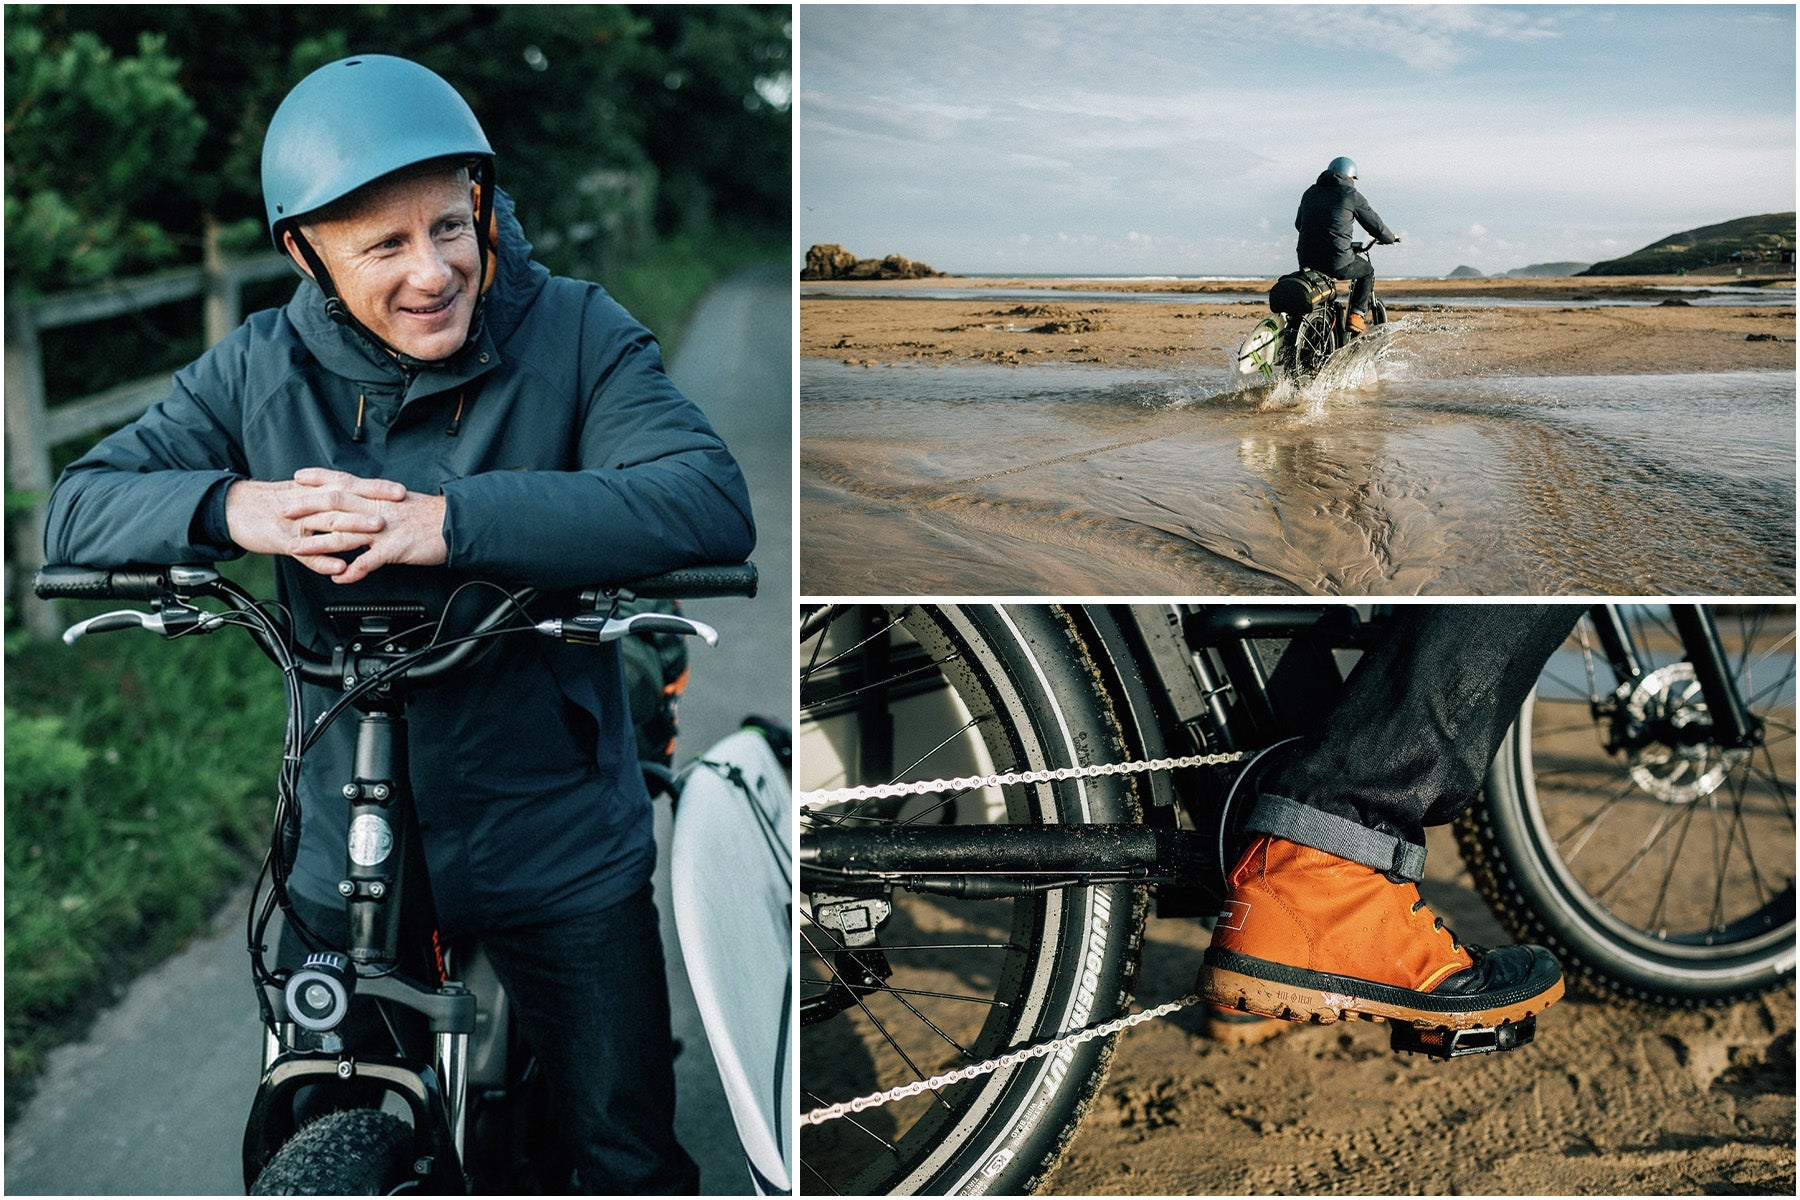 Tom Kay sets off on his electric bike to find uncrowded waves